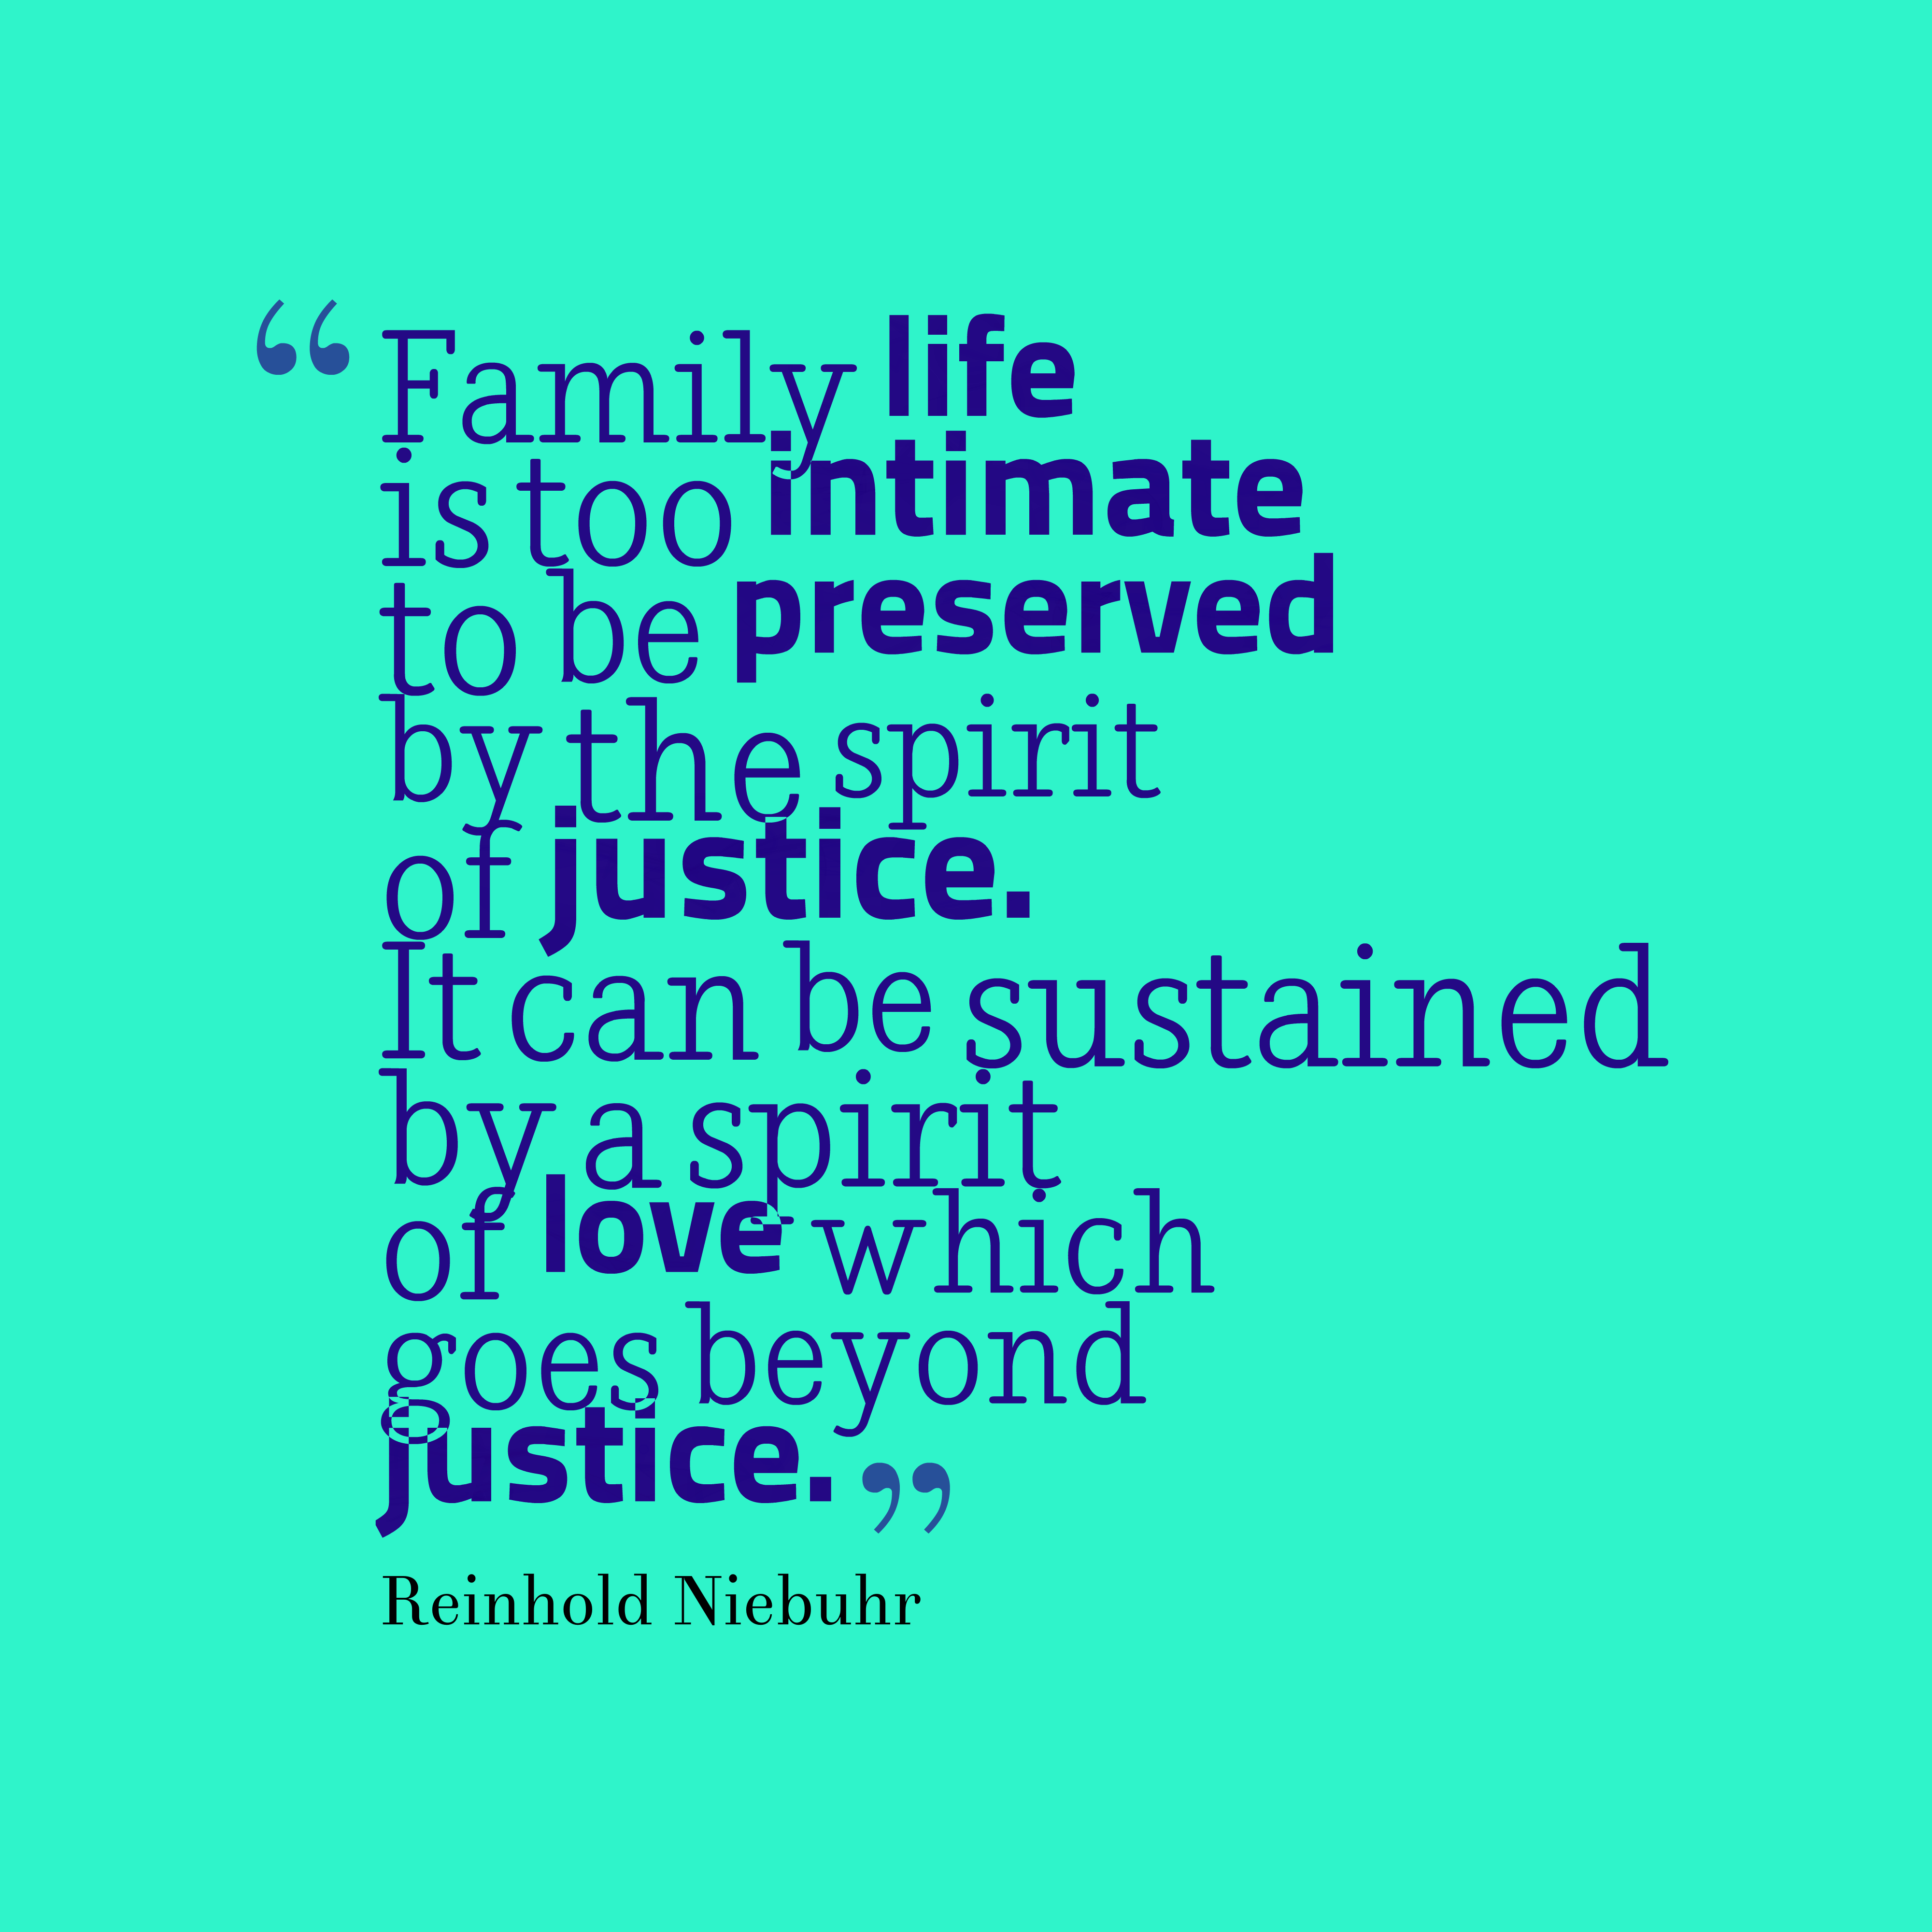 Quotes About Family Life 545 Quotes